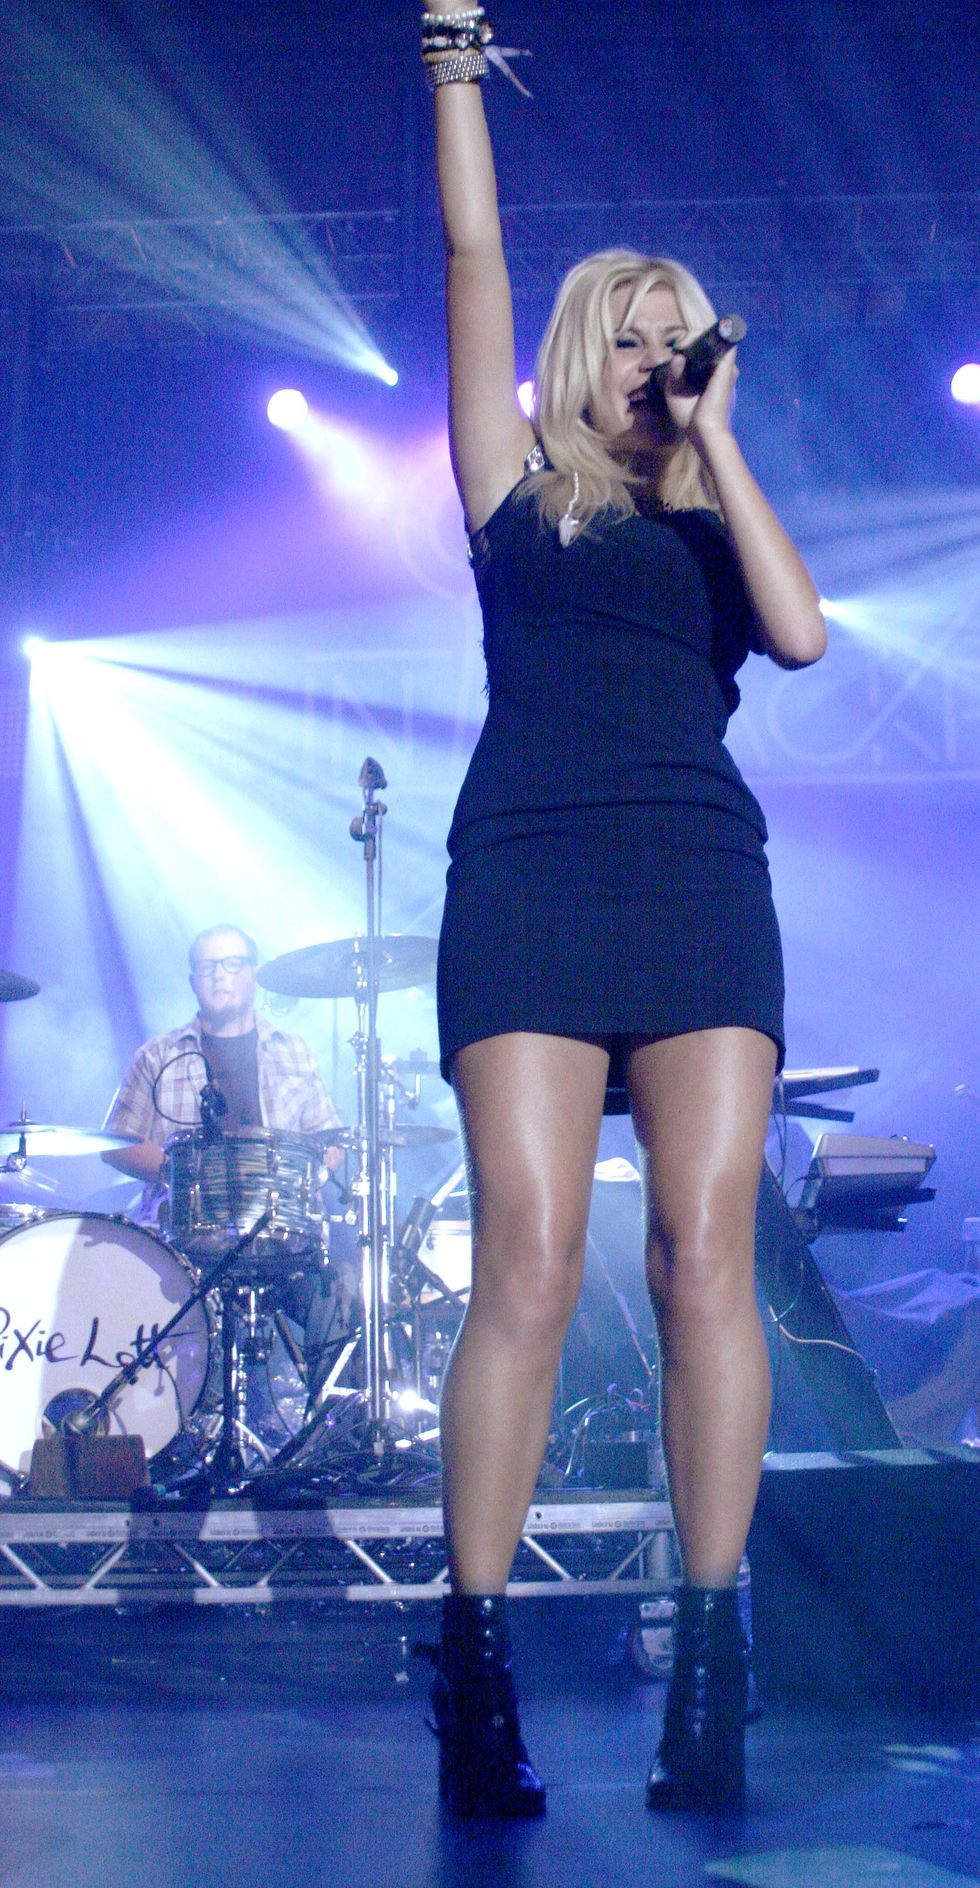 pixie-lott-performs-at-bbc-radio-2-live-from-blackpool-concert-01